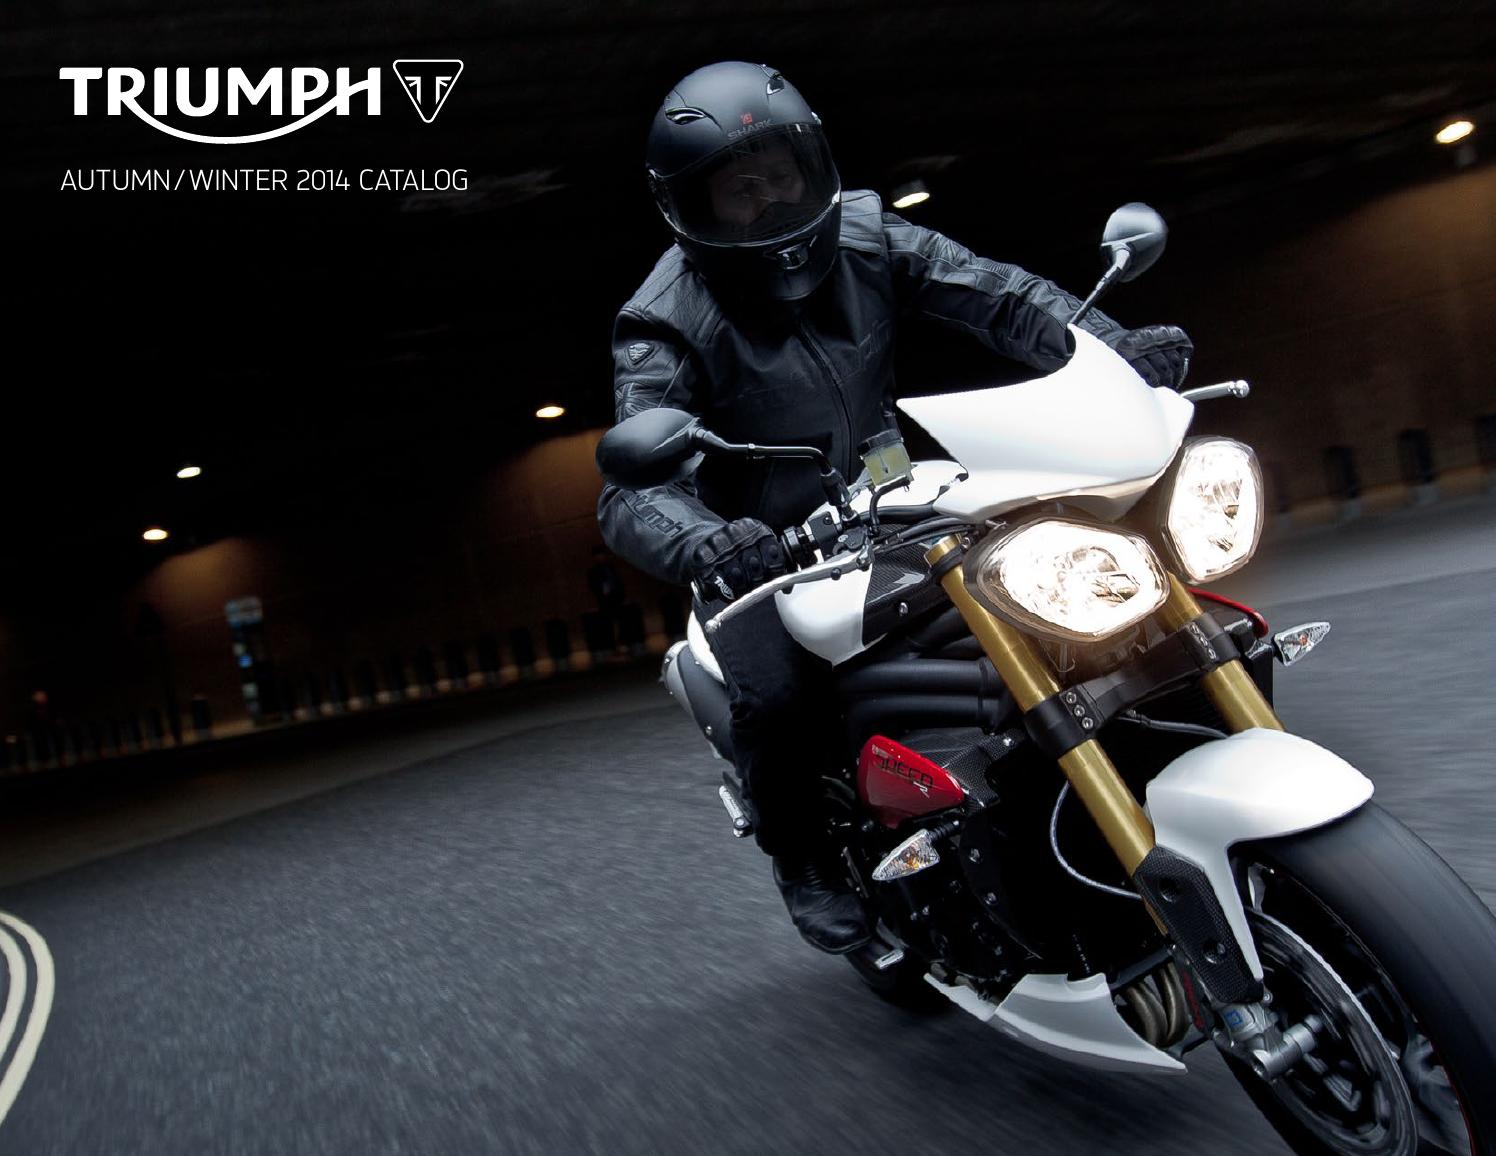 4bde28a9859 Triumph Motorcycle Apparel Catalog Fall Winter 2014 by Mototainment ...